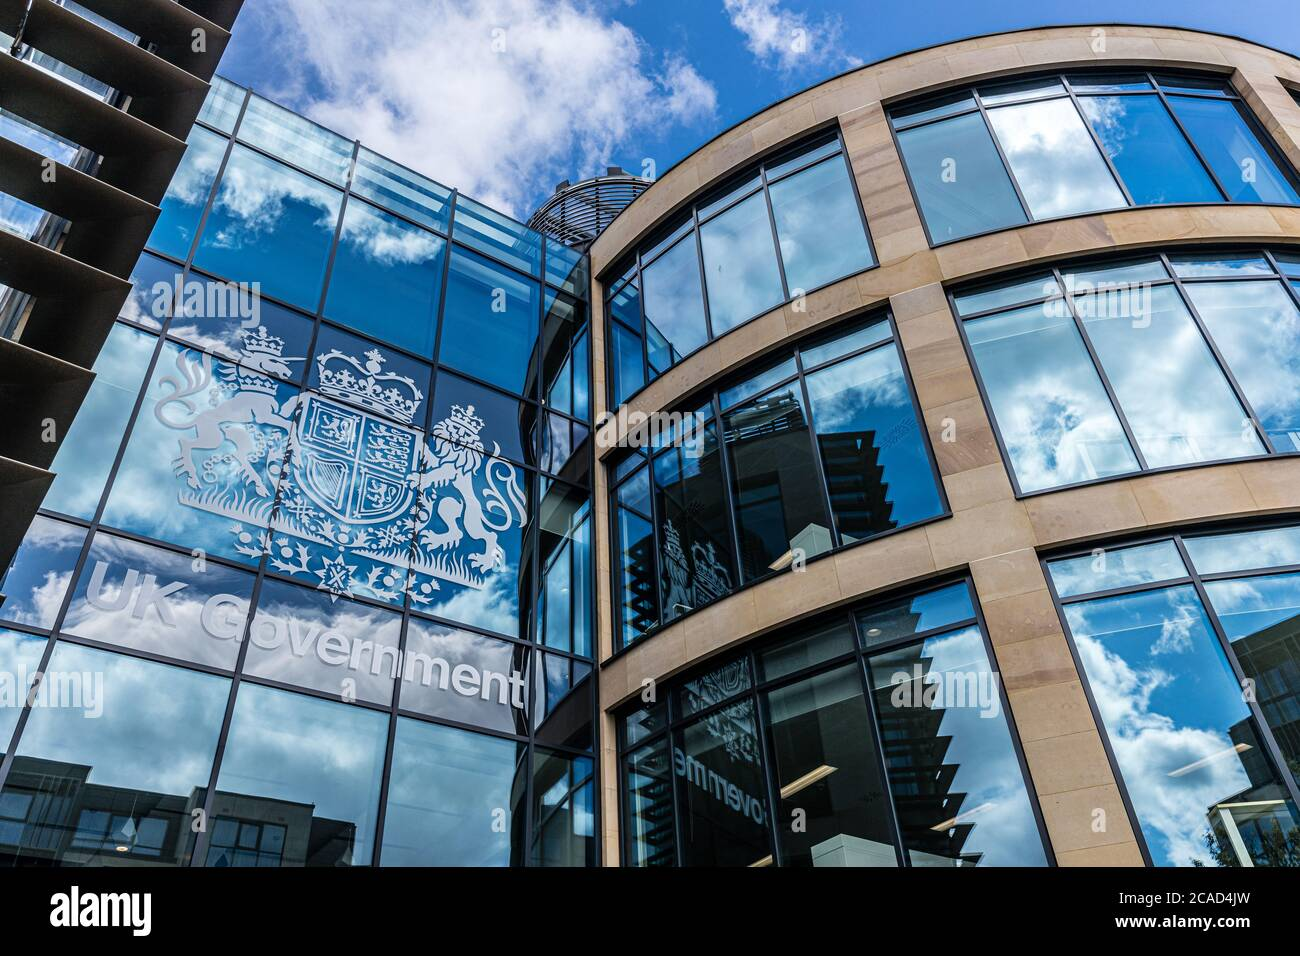 The UK Government in Scotland HQ Queen Elizabeth House Stock Photo - Alamy